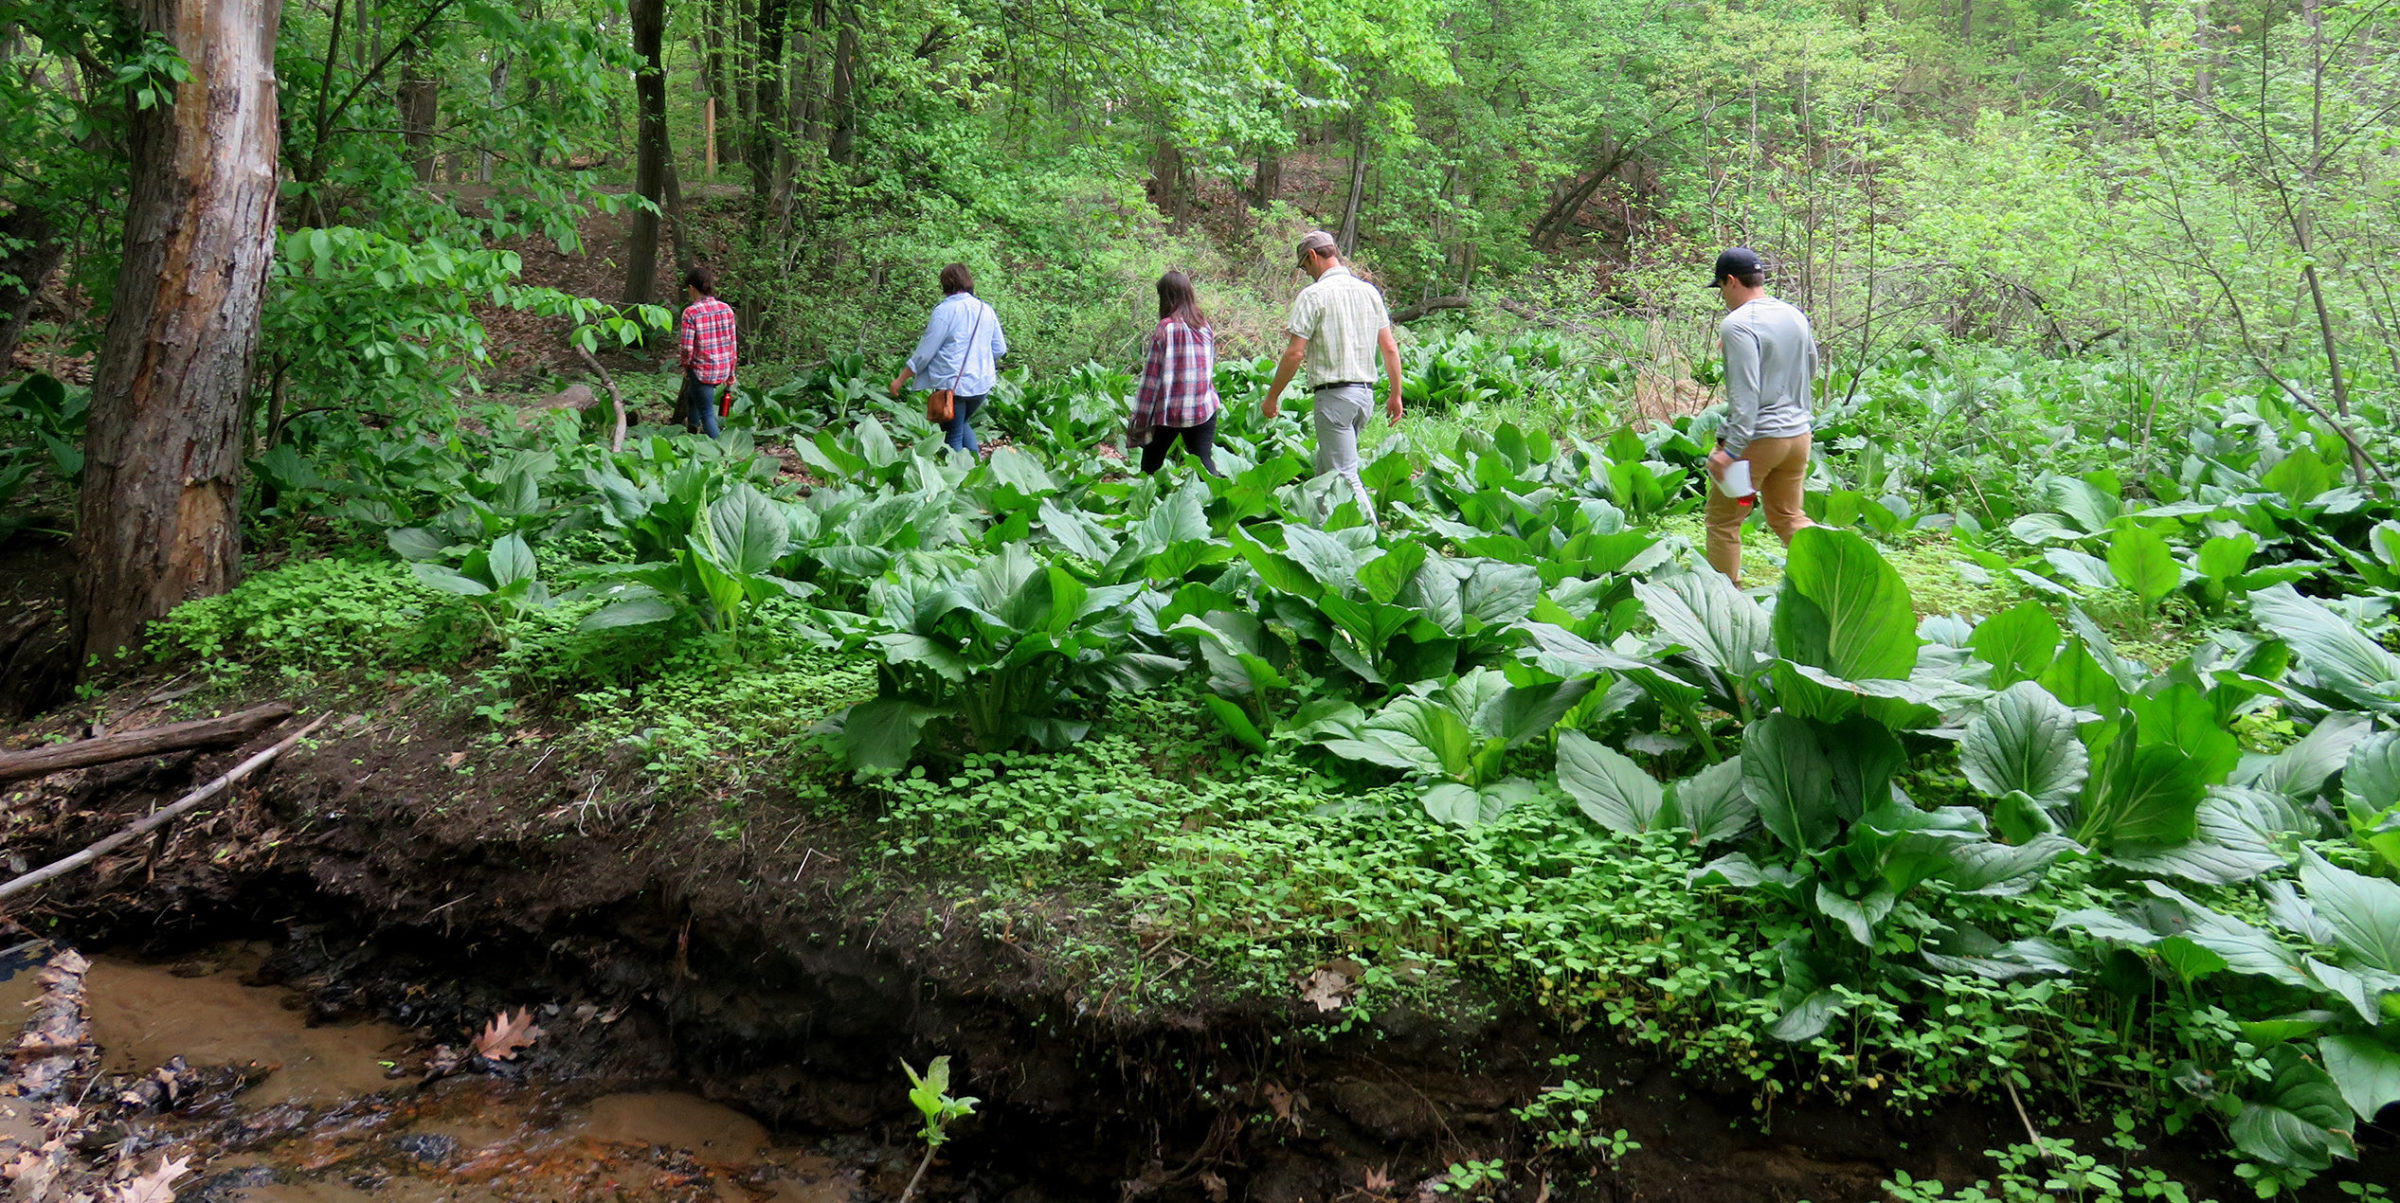 RDG Staff And Interns Walk Through A Field Of Skunk Cabbage During An Eco-cultural Restoration Intensive.